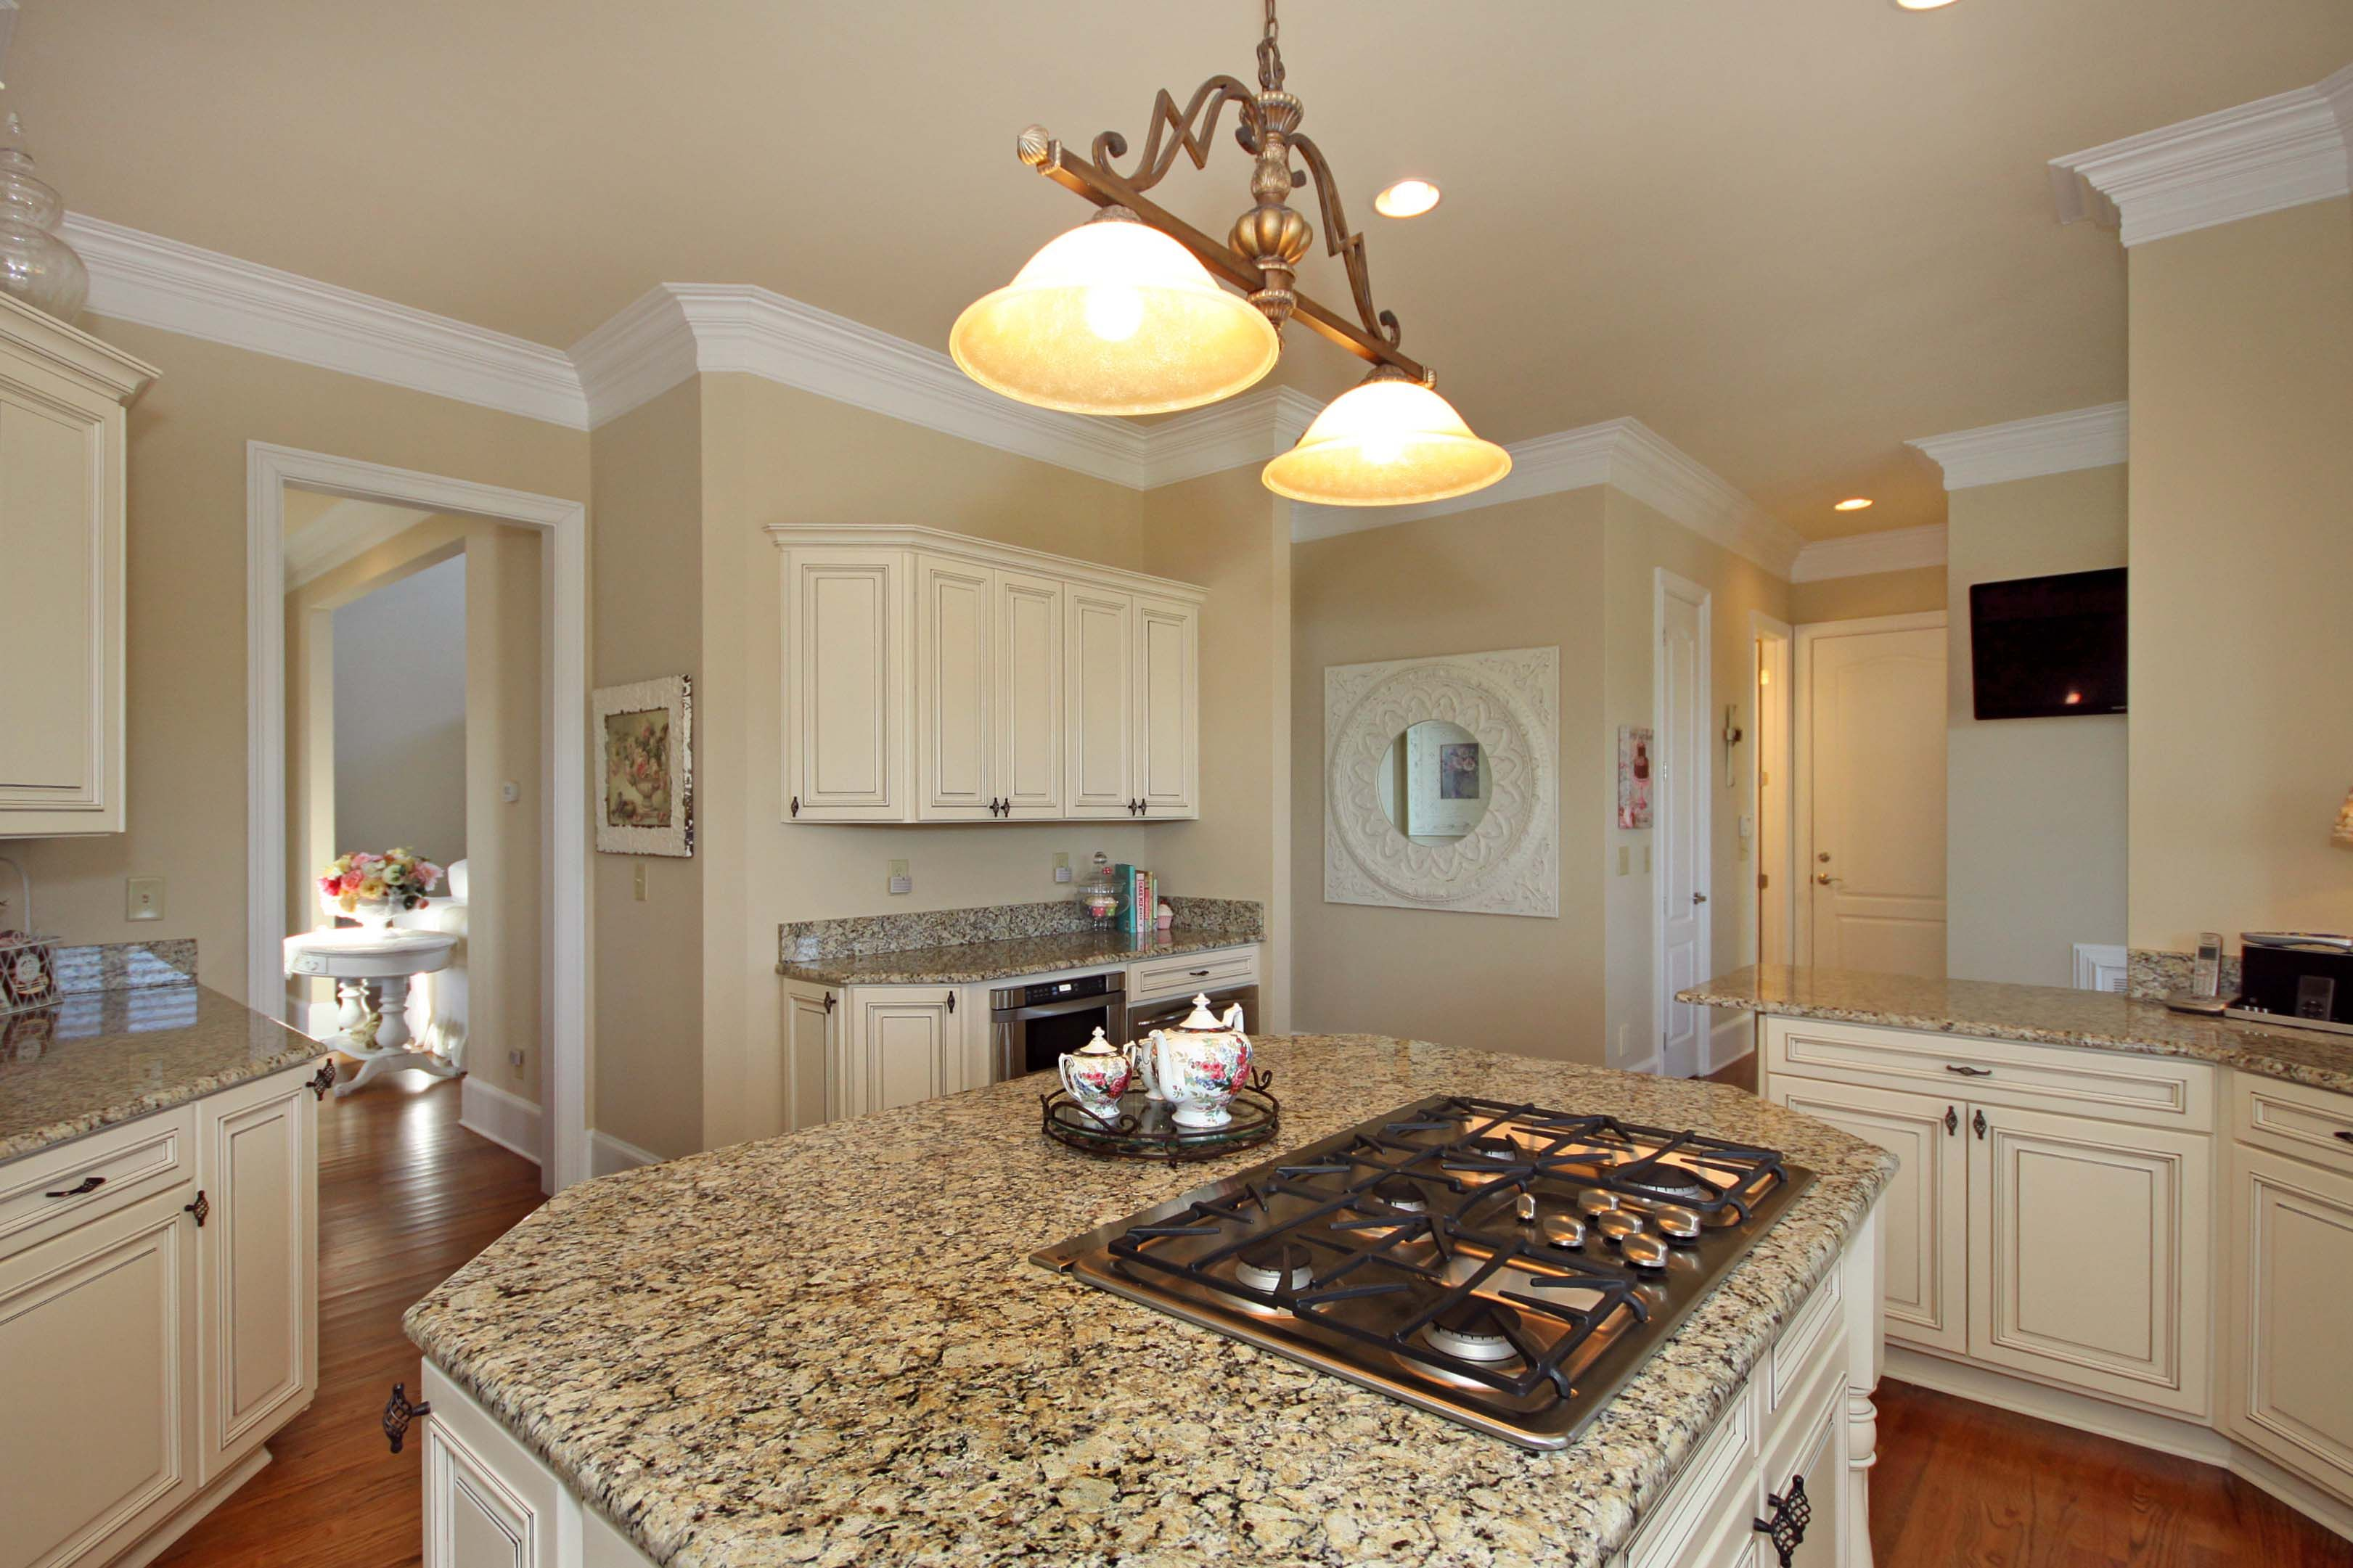 Gourmet Kitchen complete with oversized island | Gated Custom Home on brick front designs, gourmet cooking supplies, deck designs, patio designs, gourmet food, living room designs, laundry room designs, pantry designs, bathroom designs, large master bath designs, bedroom designs, family room designs, great room designs, high ceilings designs, dining designs, shared bath designs, roman tub designs, gourmet custom kitchens, marble floor designs, walk-in closets designs,